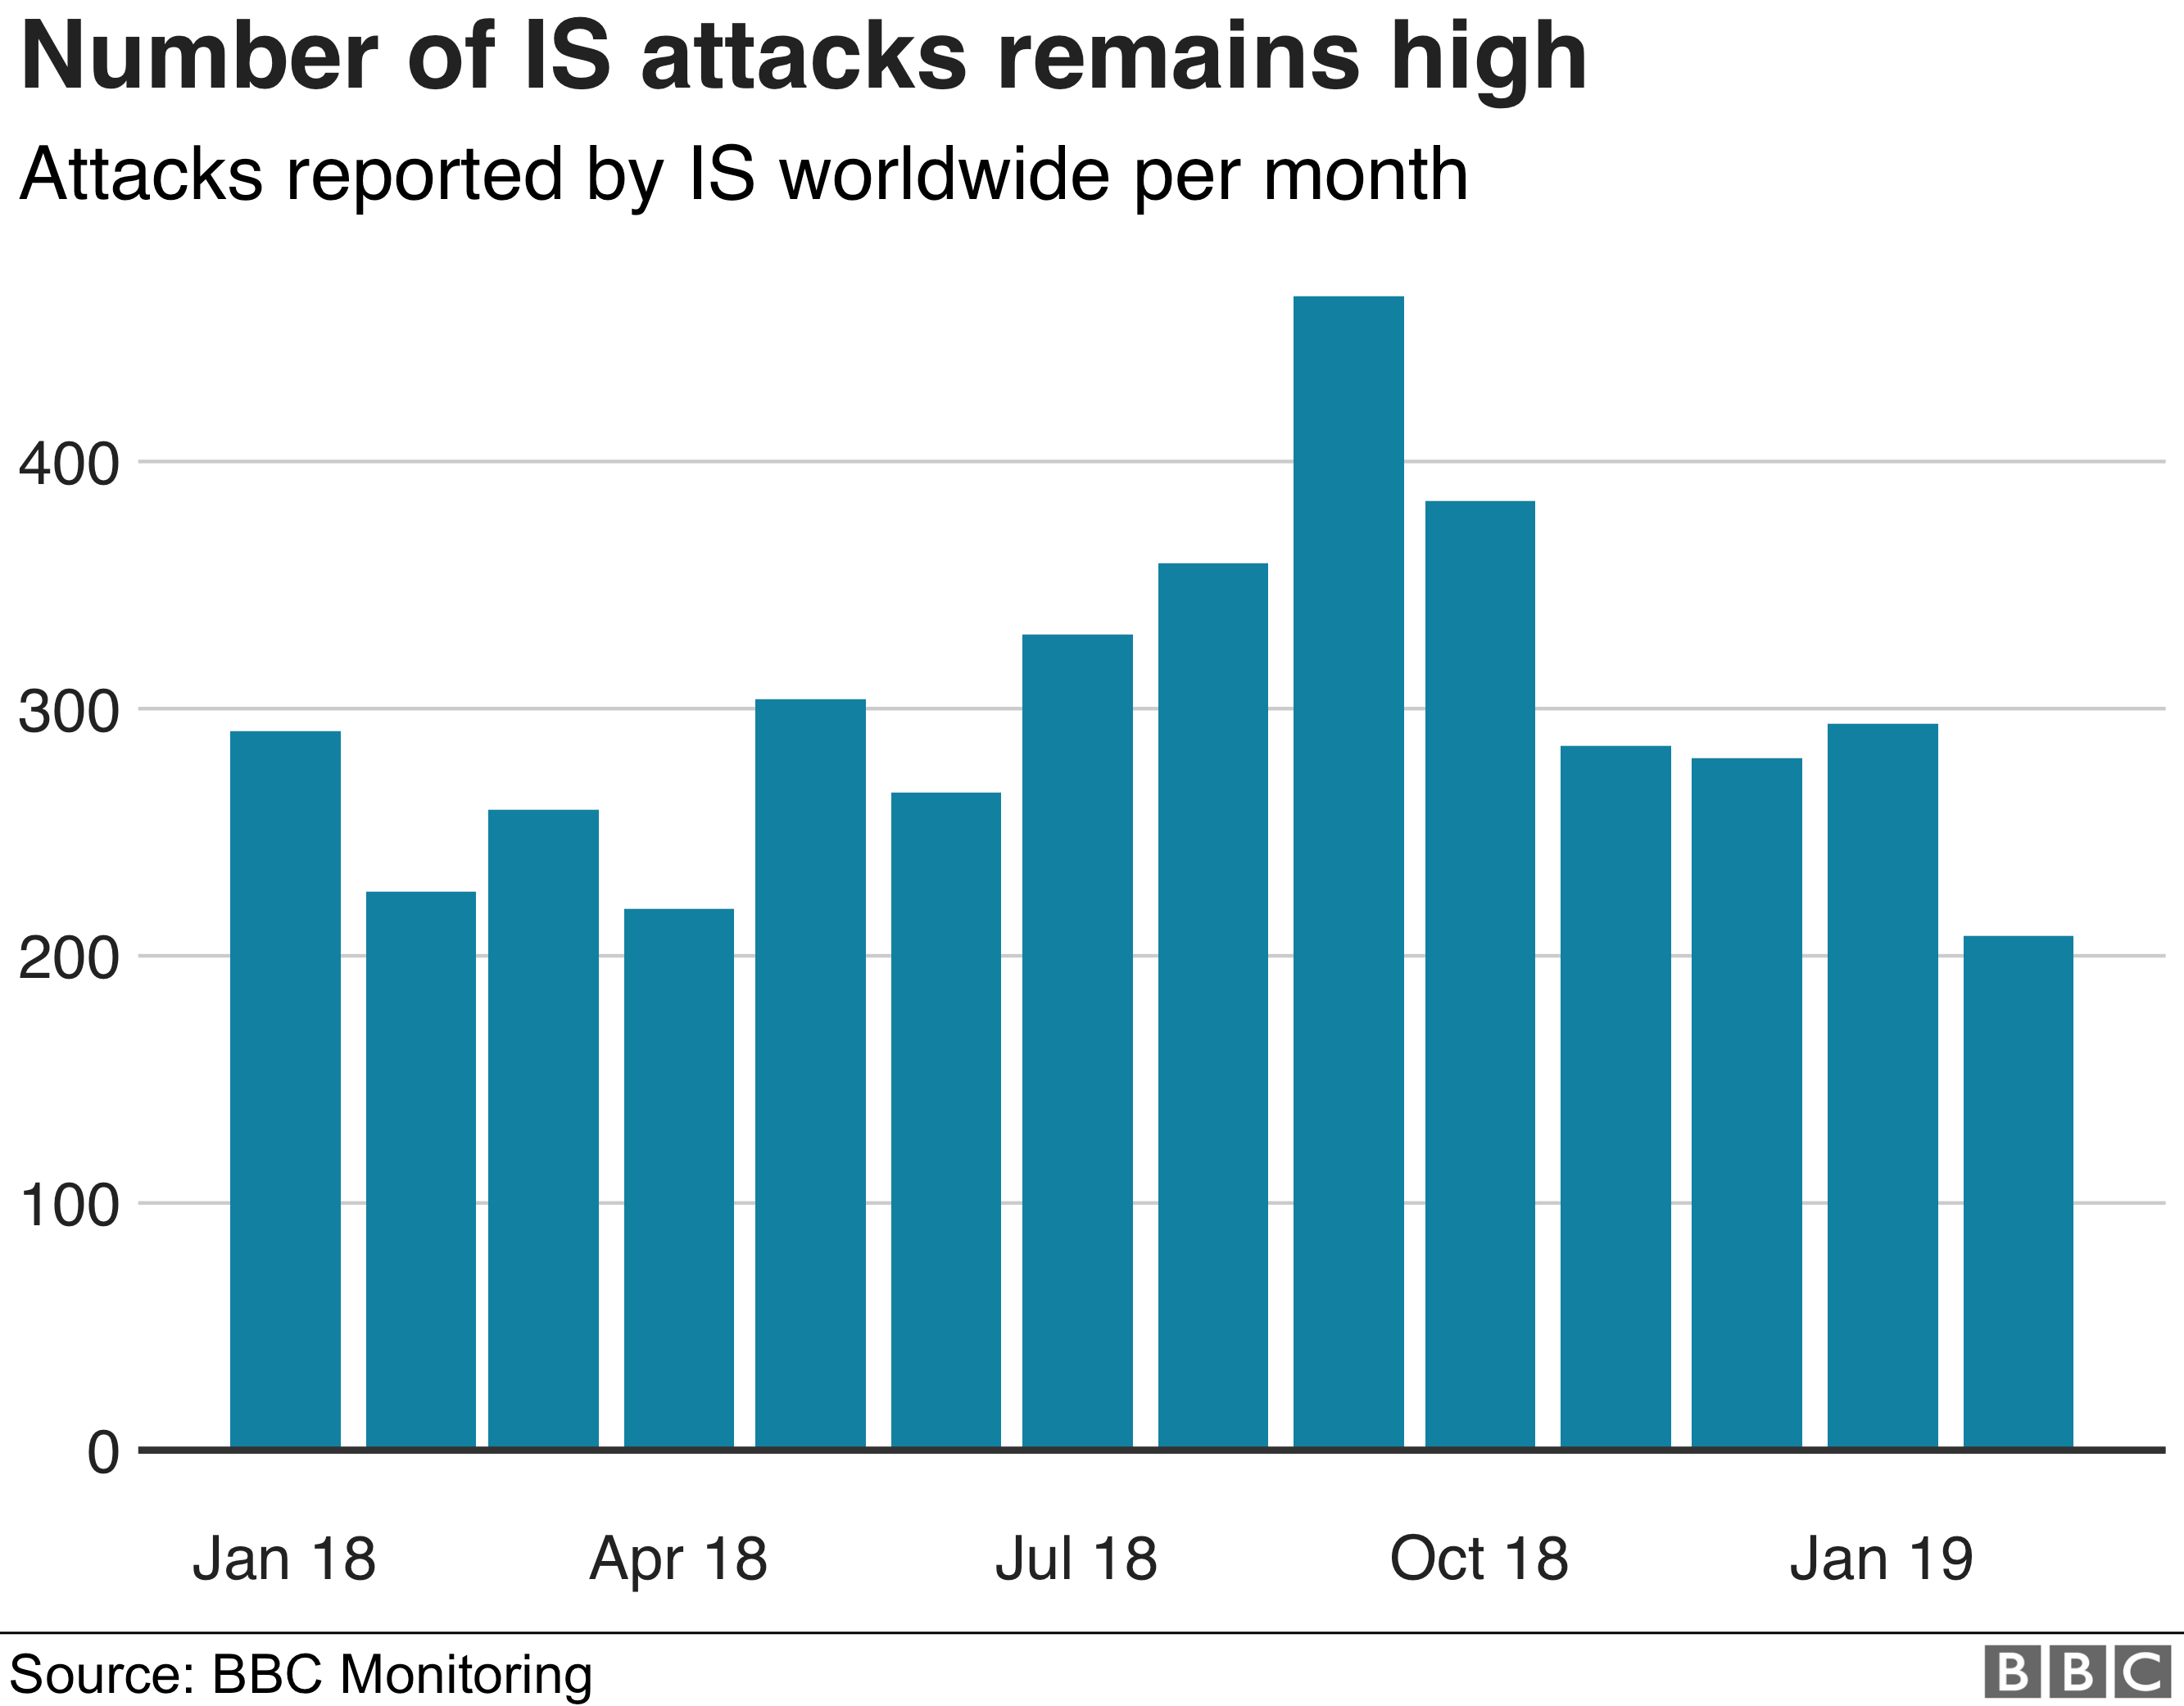 Chart showing number of worldwide attacks by IS per month